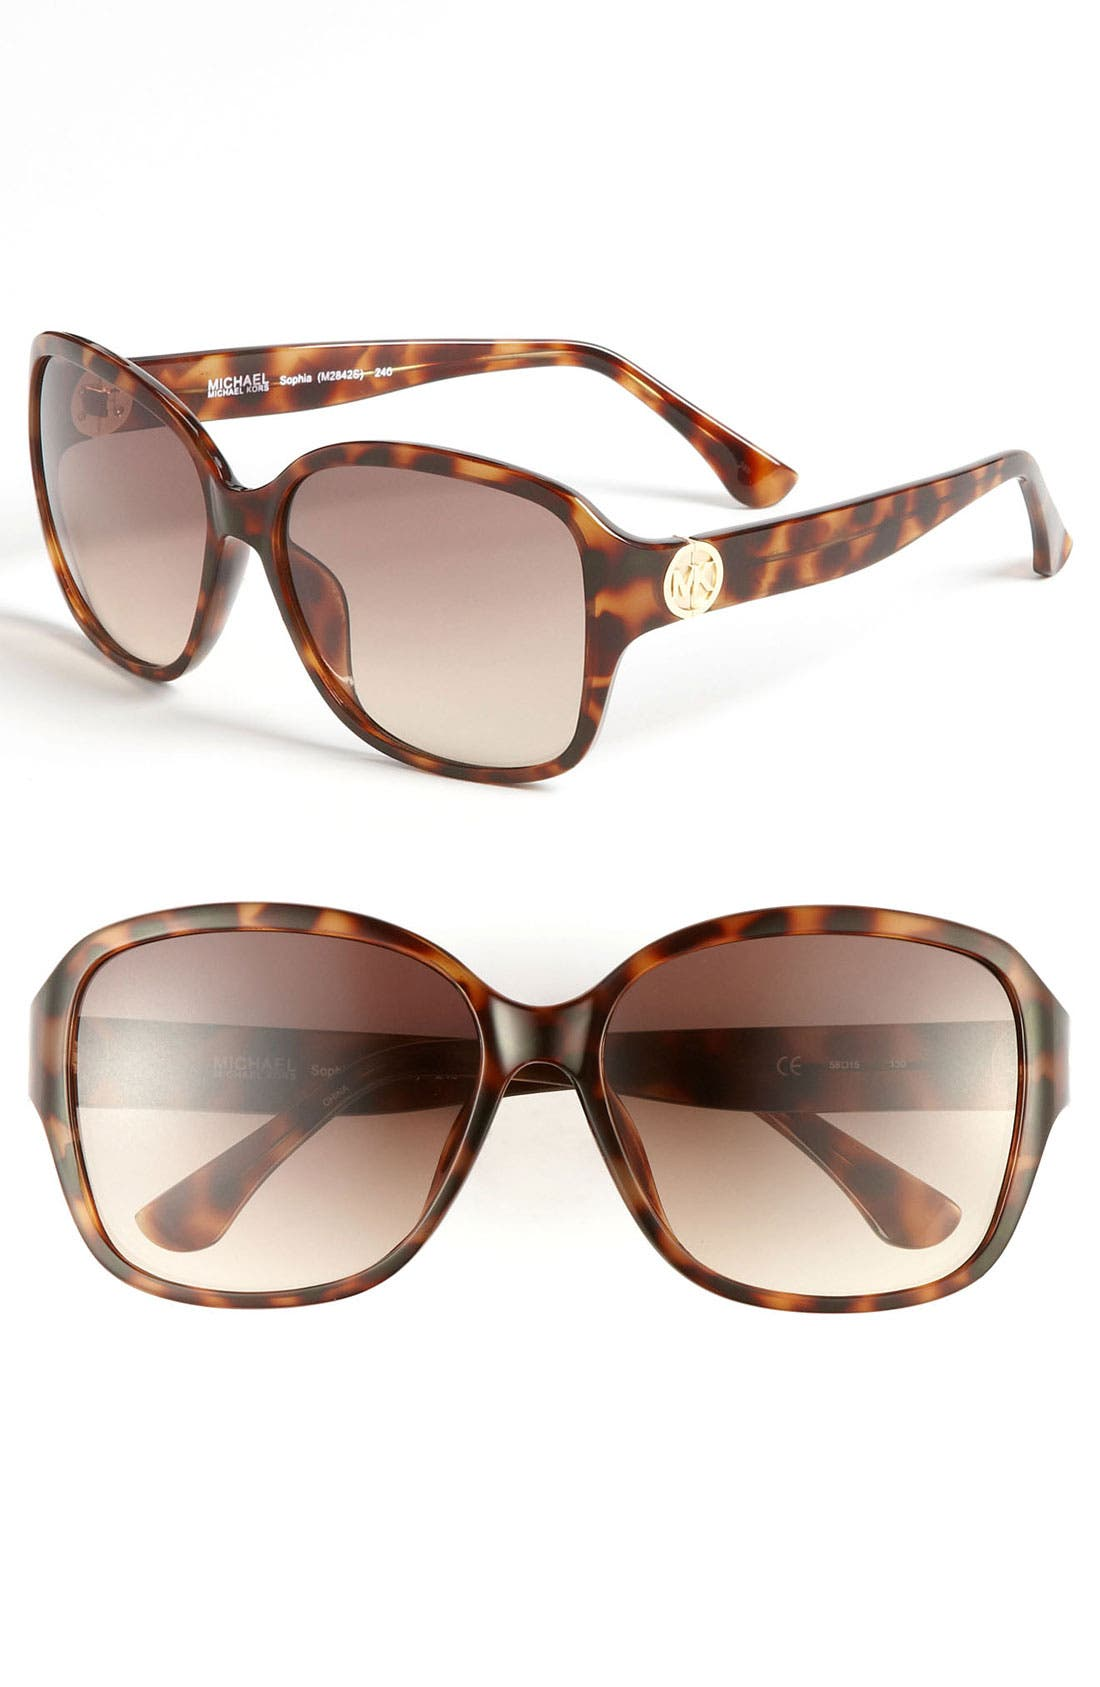 Main Image - MICHAEL Michael Kors 'Sophia' 58mm Sunglasses